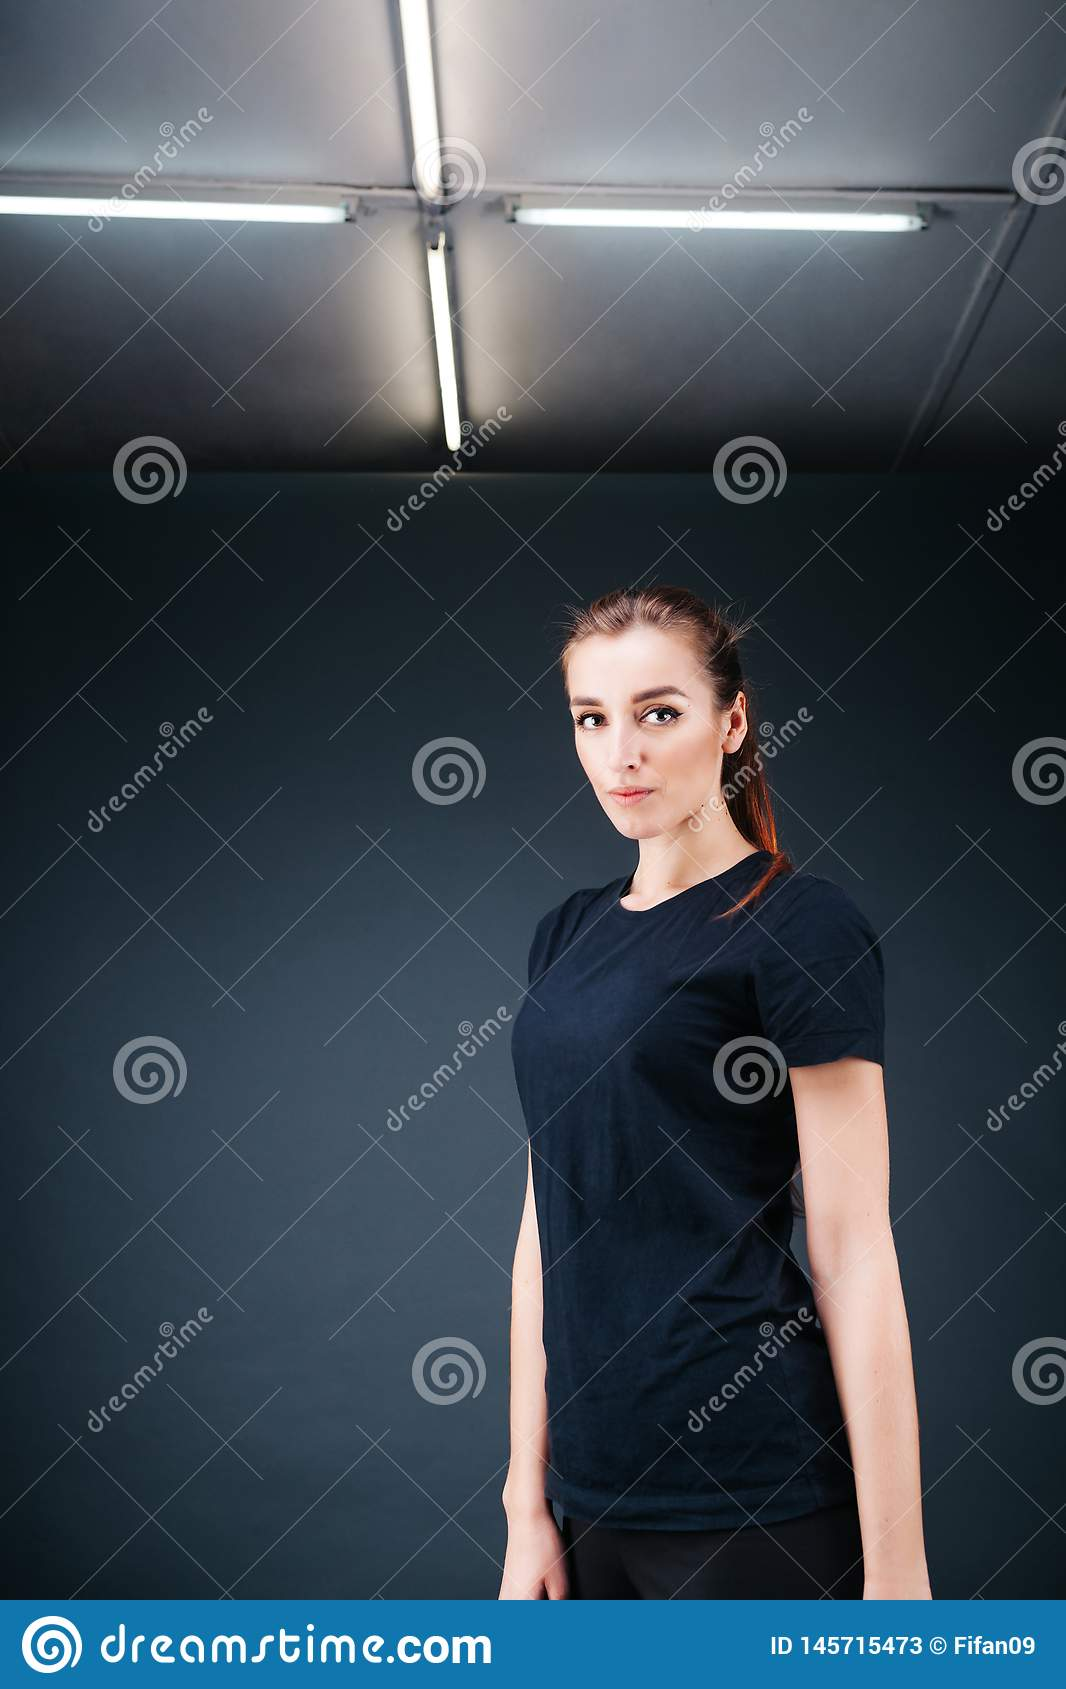 Sporty-looking girl in a black T-shirt and leggings